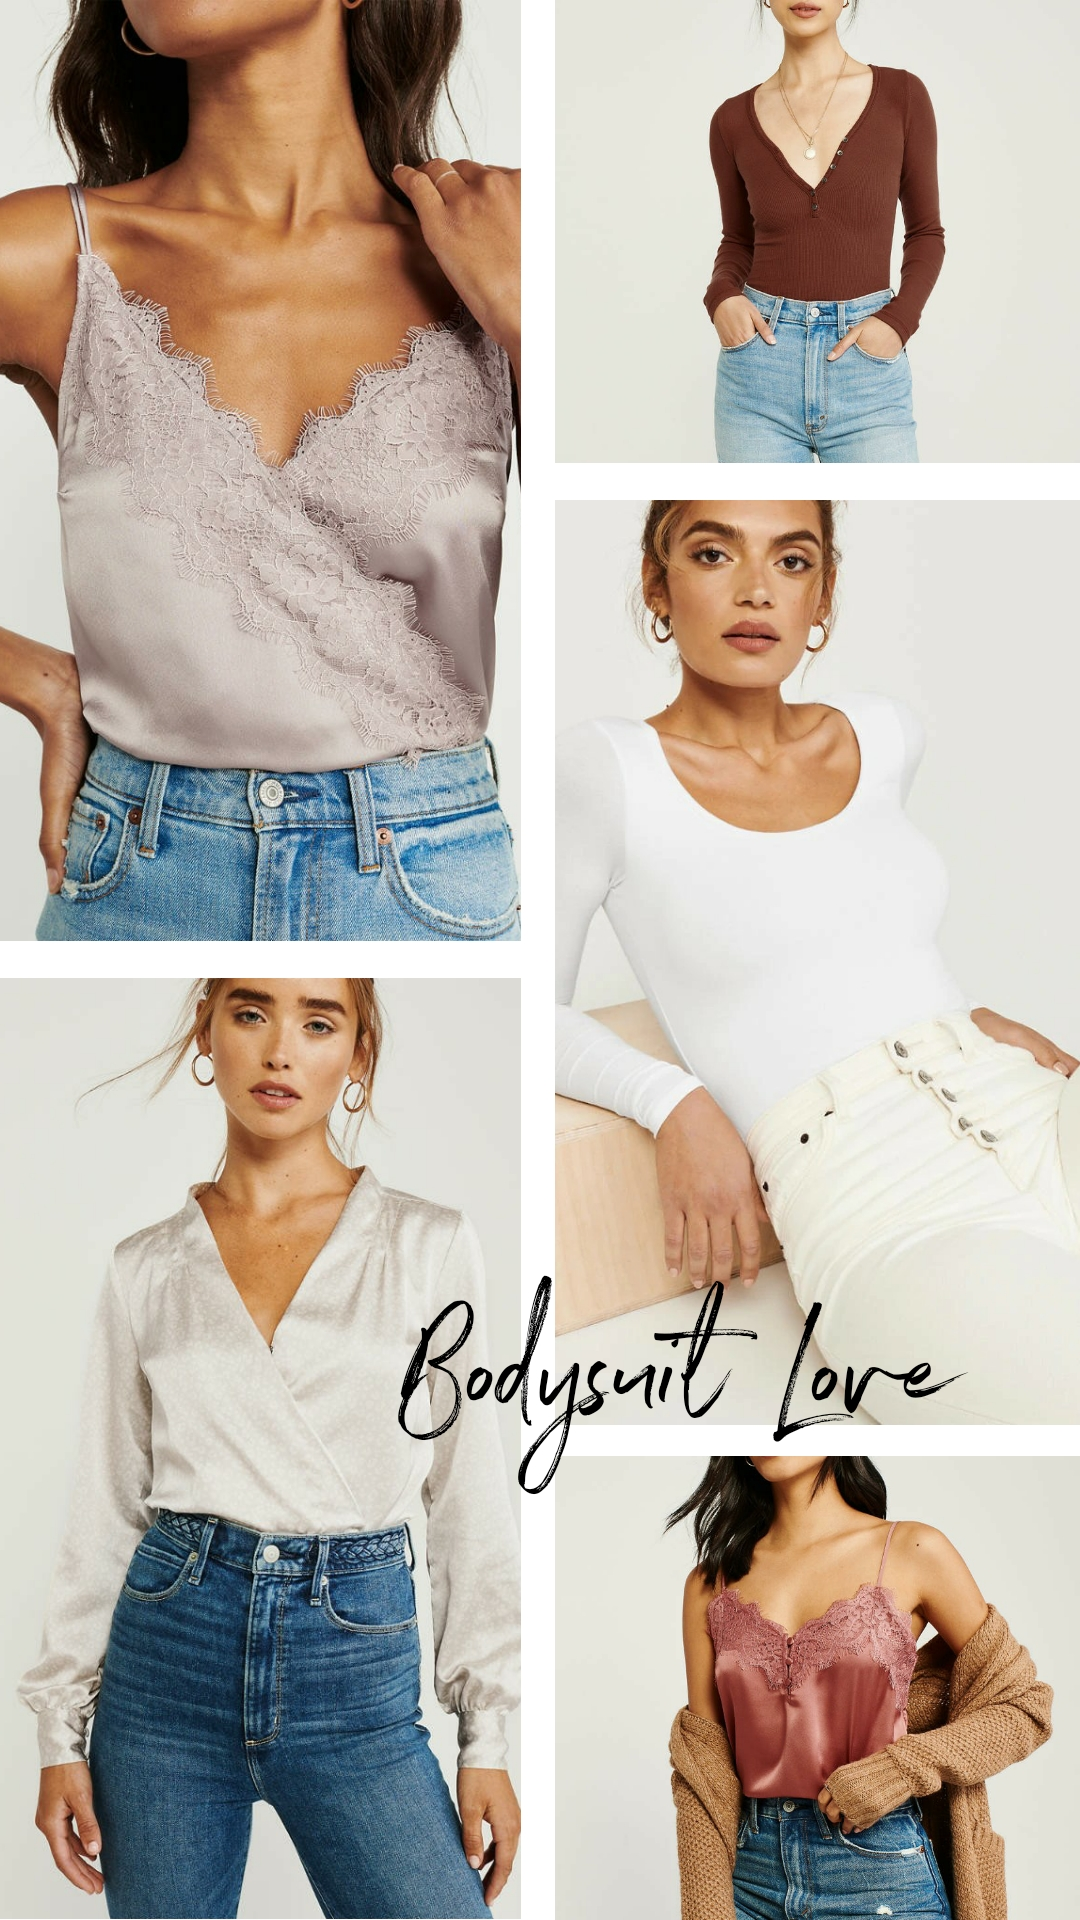 bodysuit love - Danielle Comer Blog